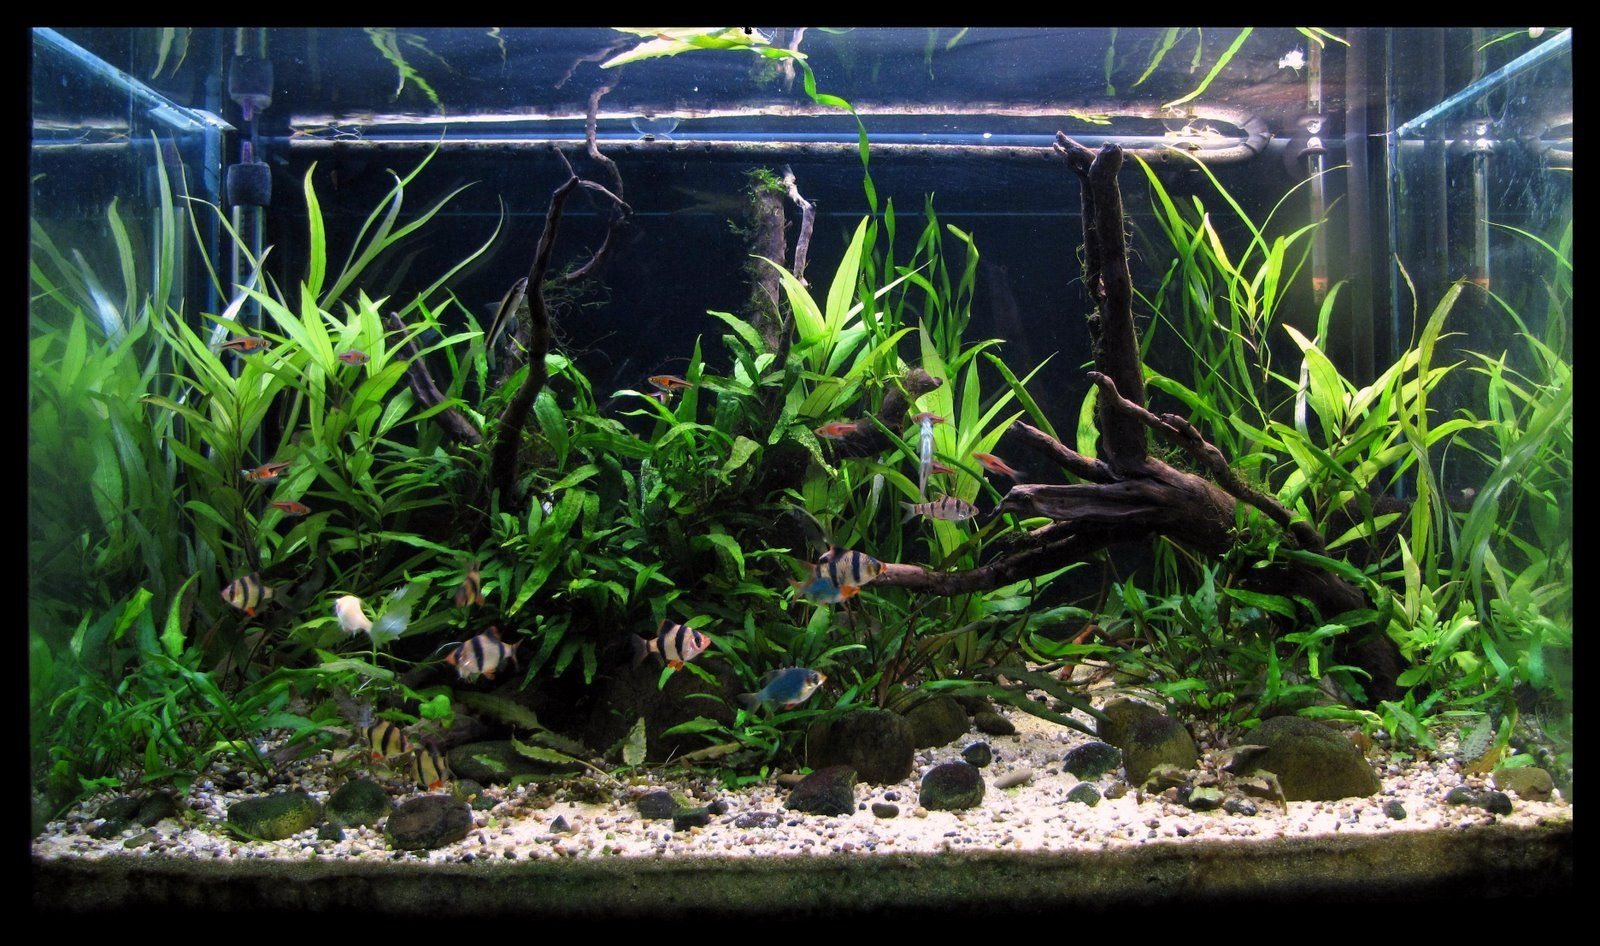 Freshwater aquarium fish from asia - South East Asia Biotope White Water River In Thailand See More Aquarium And Fish